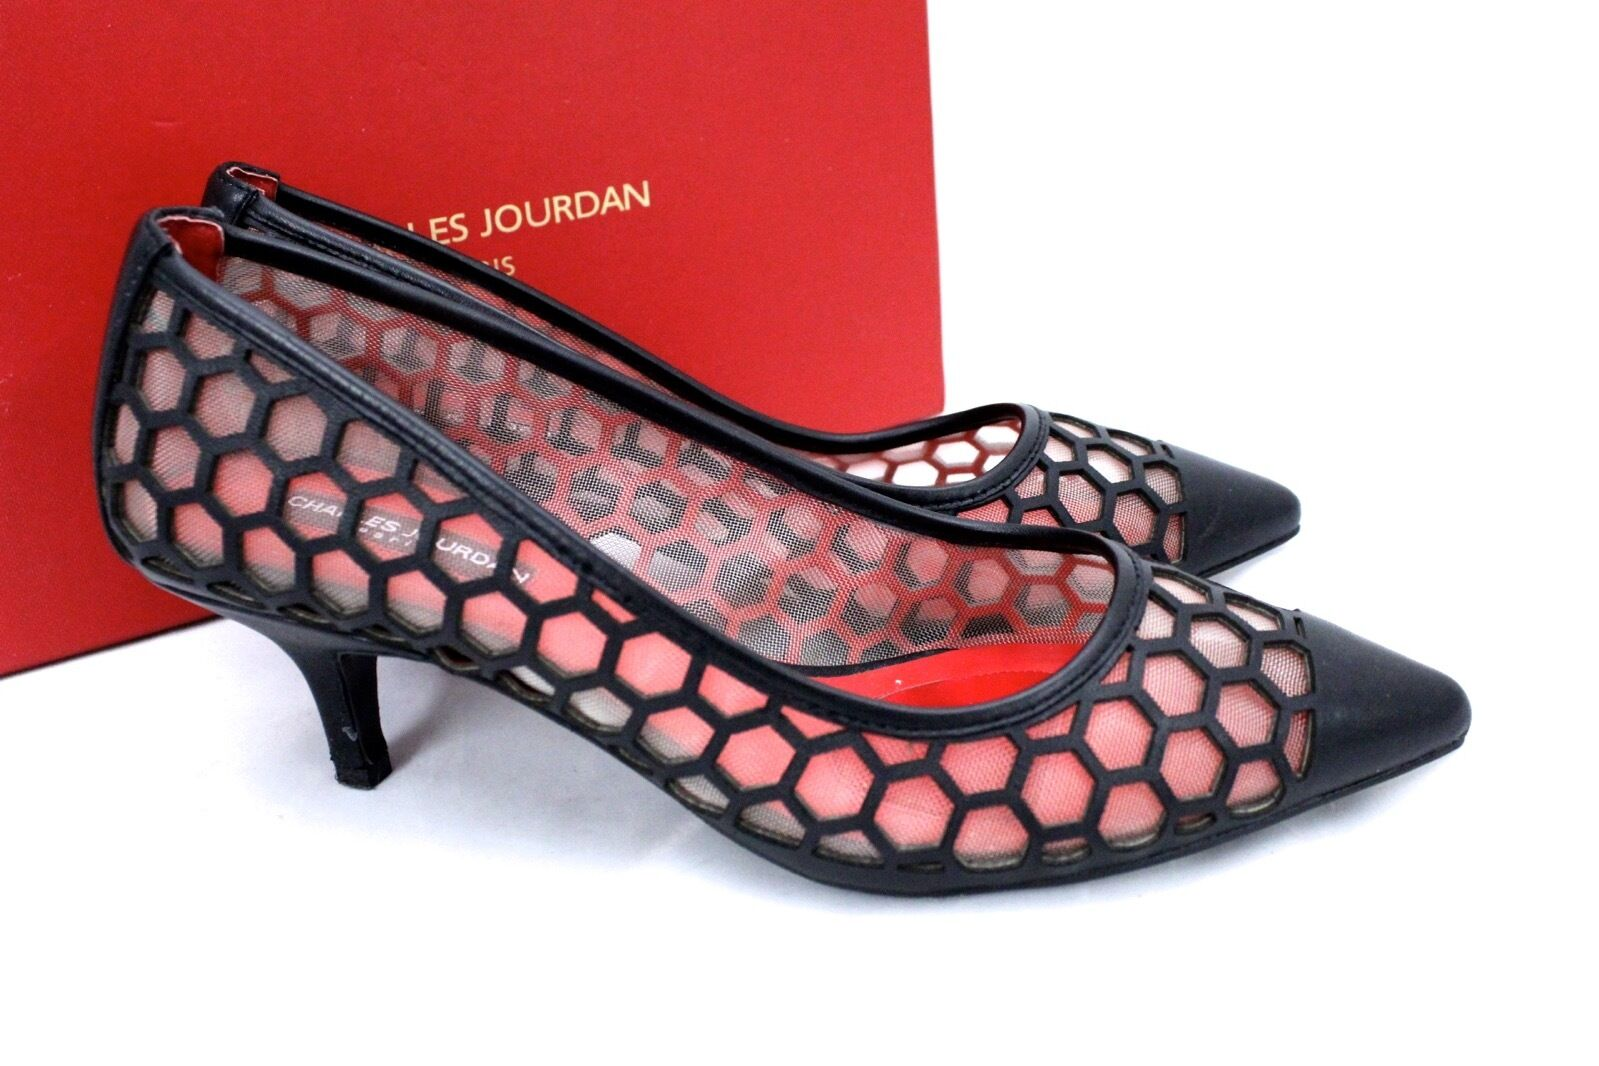 Charles Jourdan Londen Leather Honeycomb Honeycomb Honeycomb Mesh Kitten Heel Pumps 8.5 Black C1670 95c721